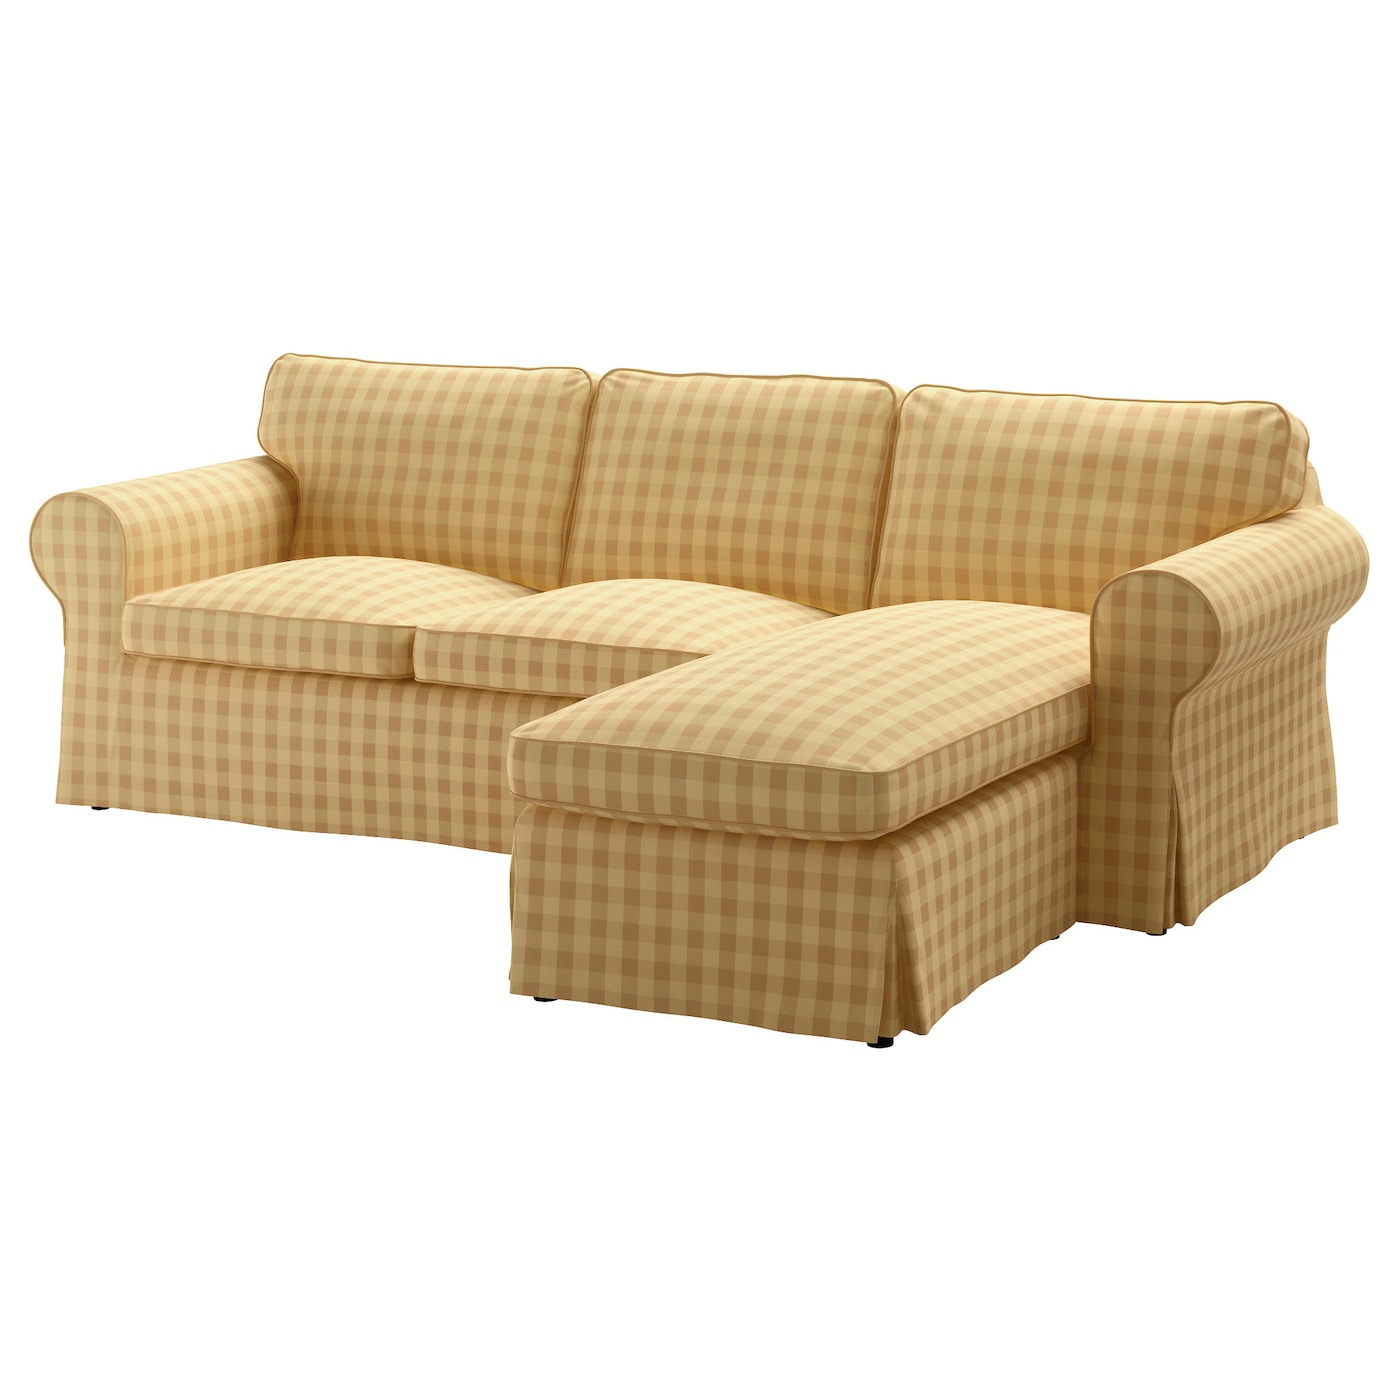 Ektorp two seat sofa and chaise longue skaftarp yellow ikea for Chaise longue sofa